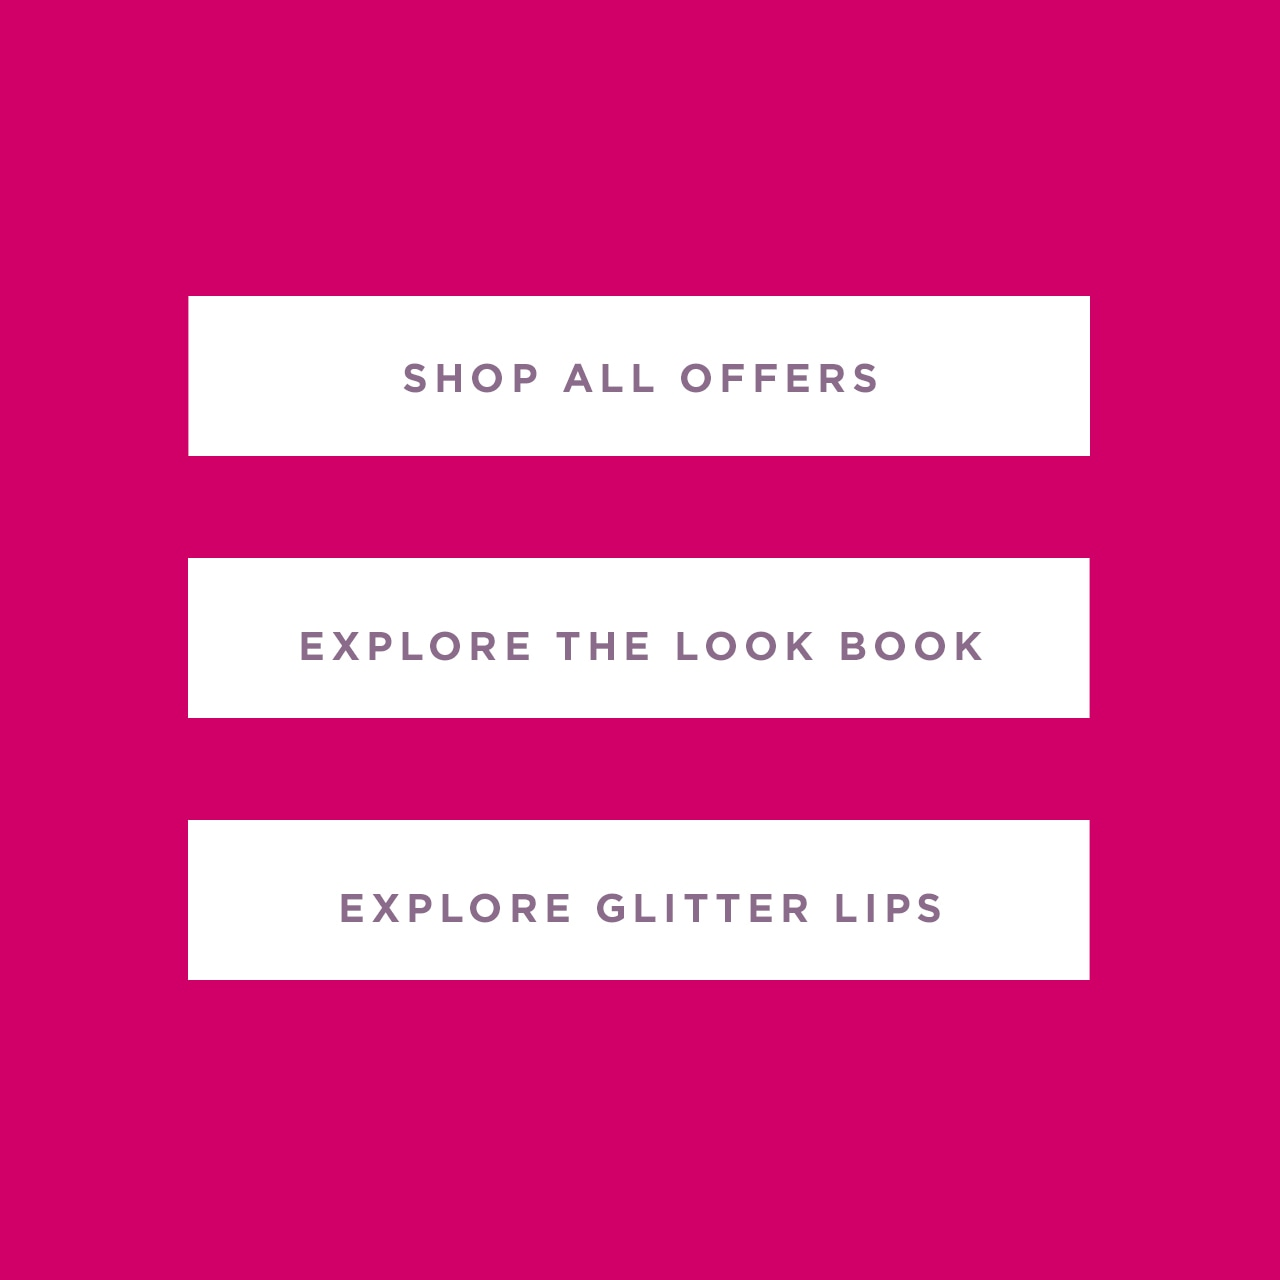 Shop All Offers, Explore the Look Book, Explore Glitter Lips